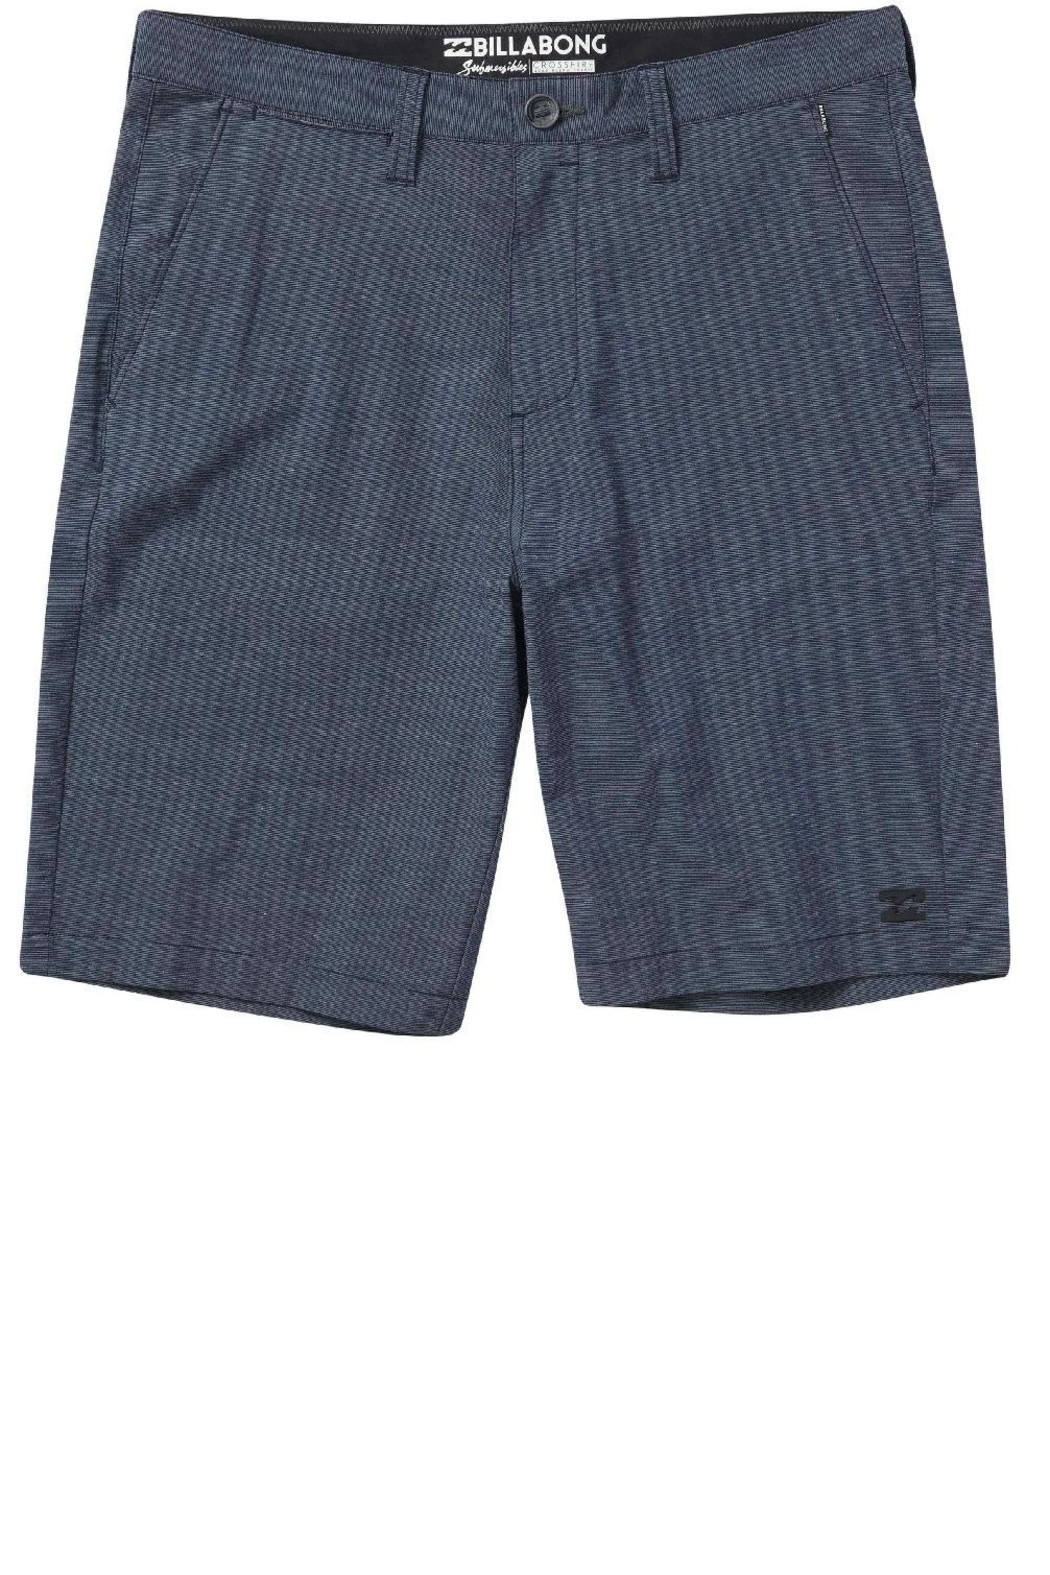 Billabong Crossfire X Shorts - Main Image